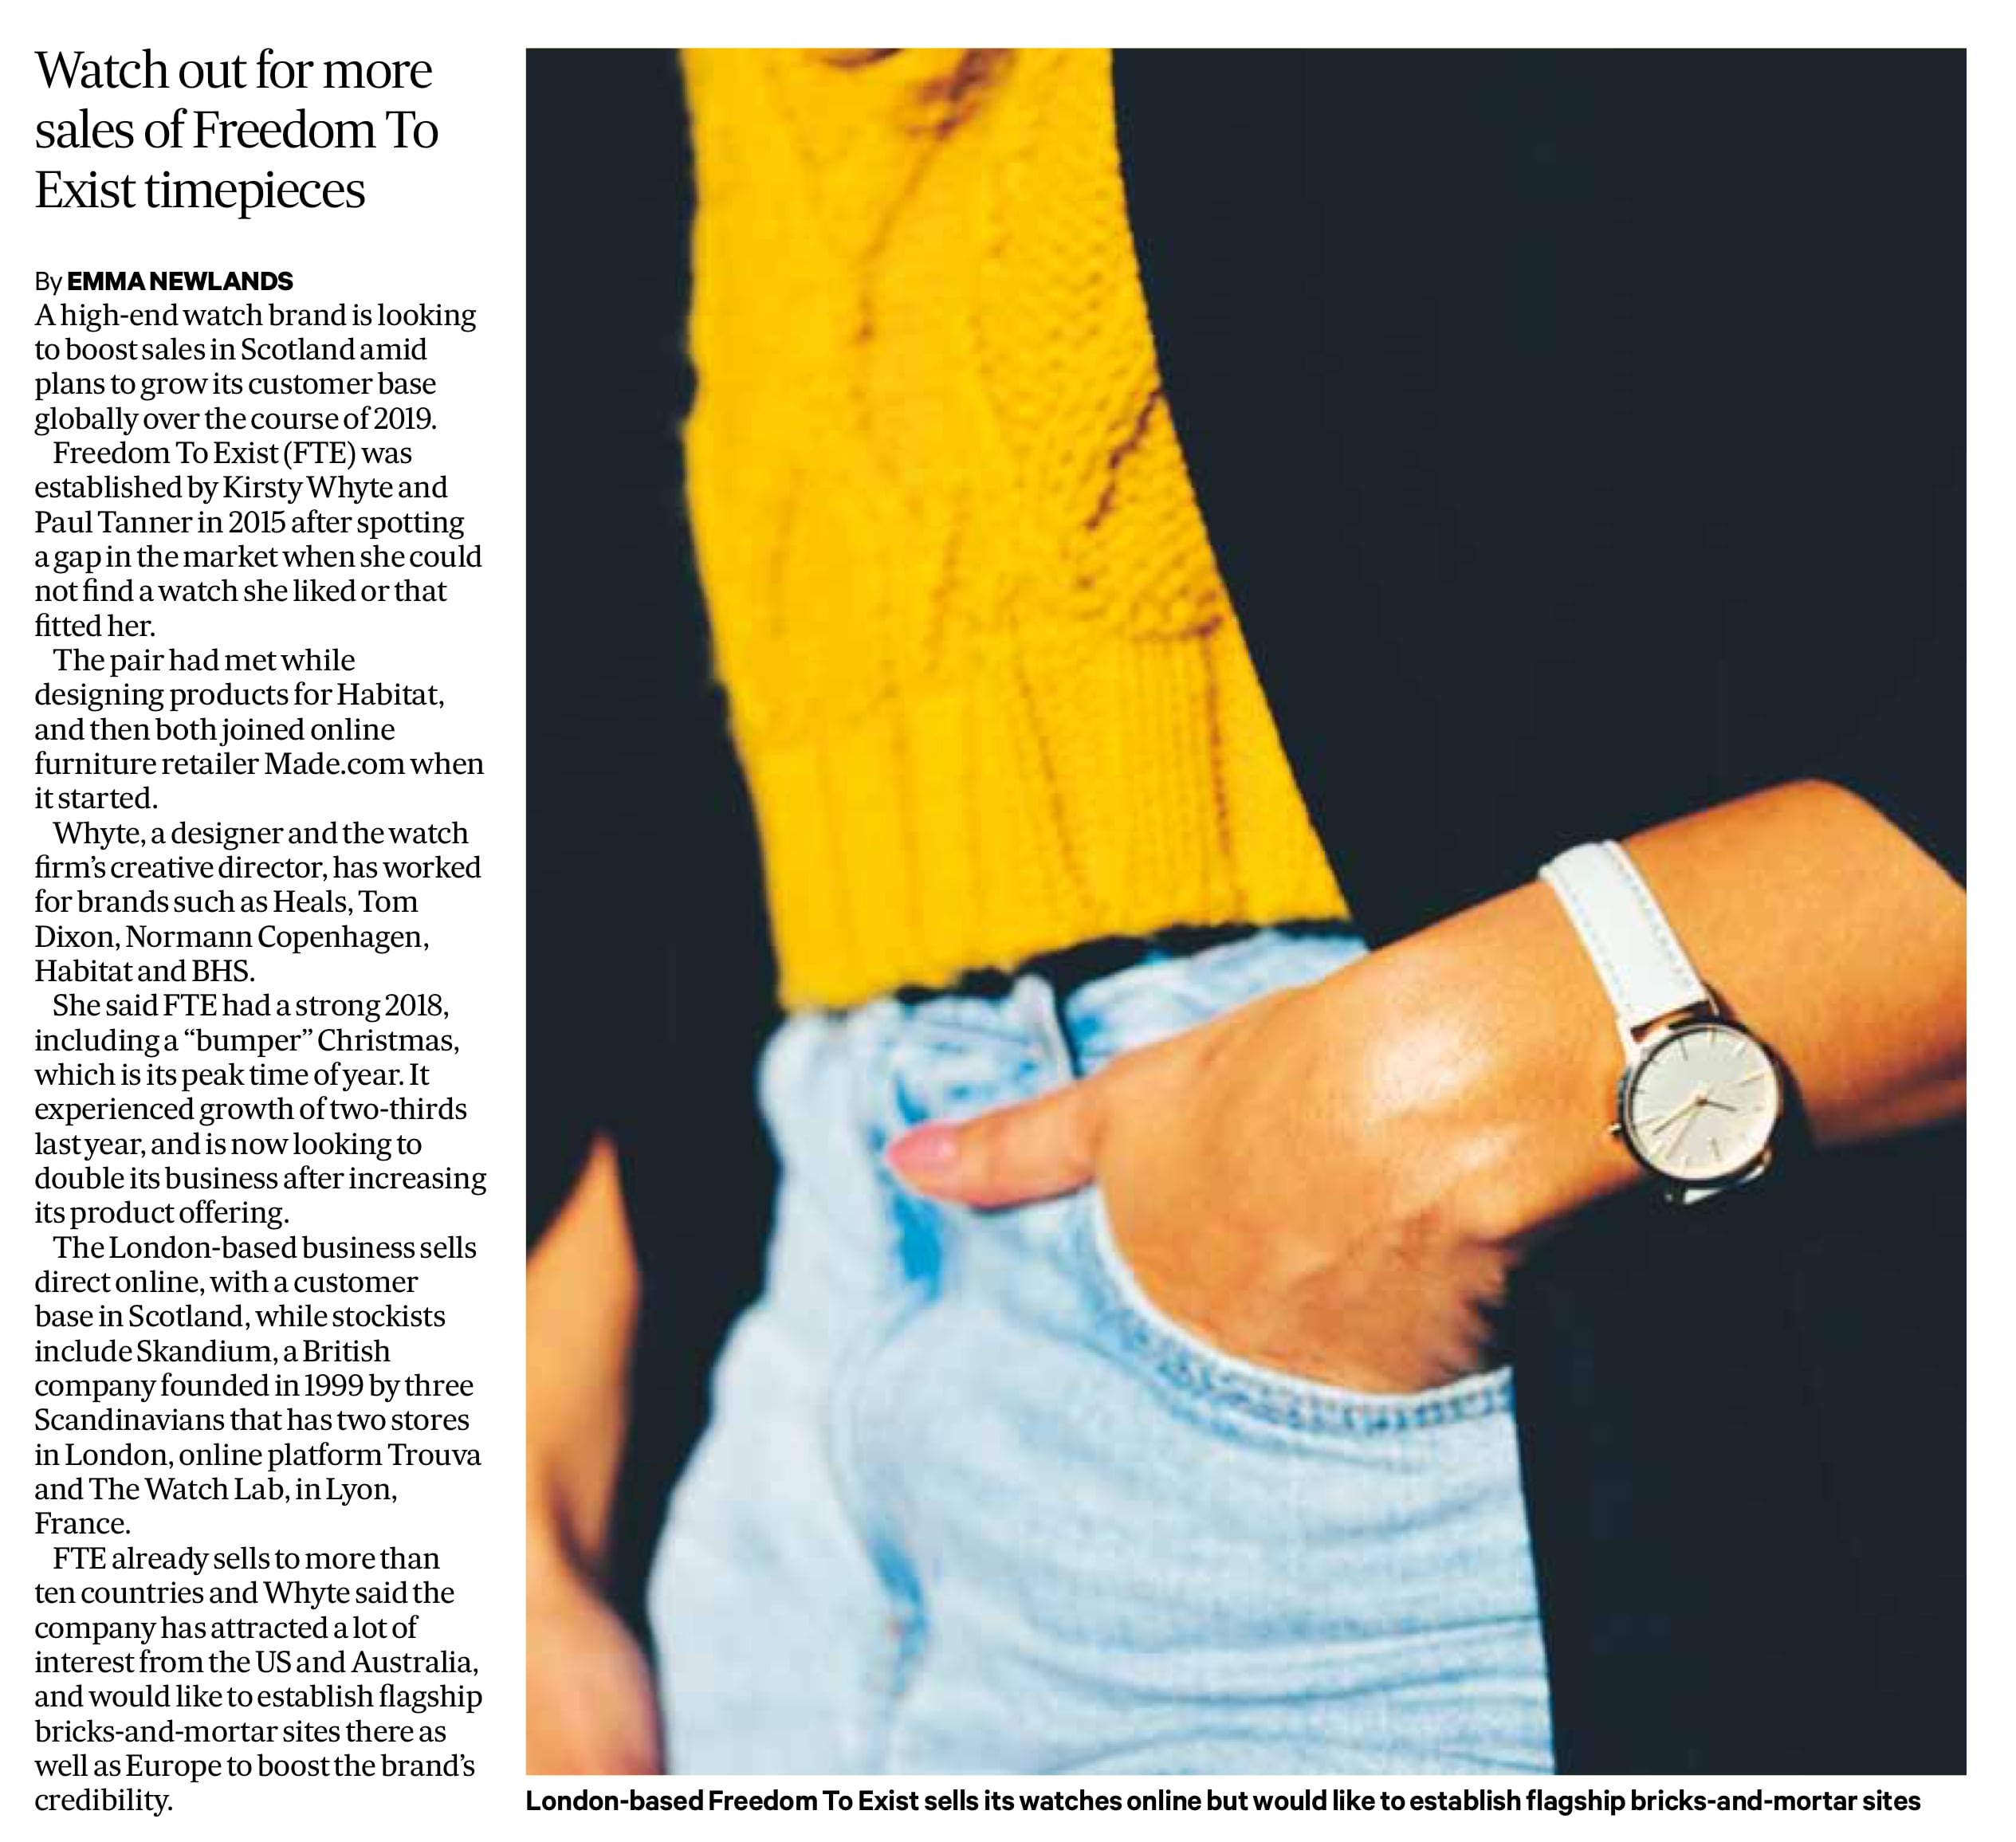 The Scotsman - Freedom To Exist Minimal Watches - Kirsty Whyte